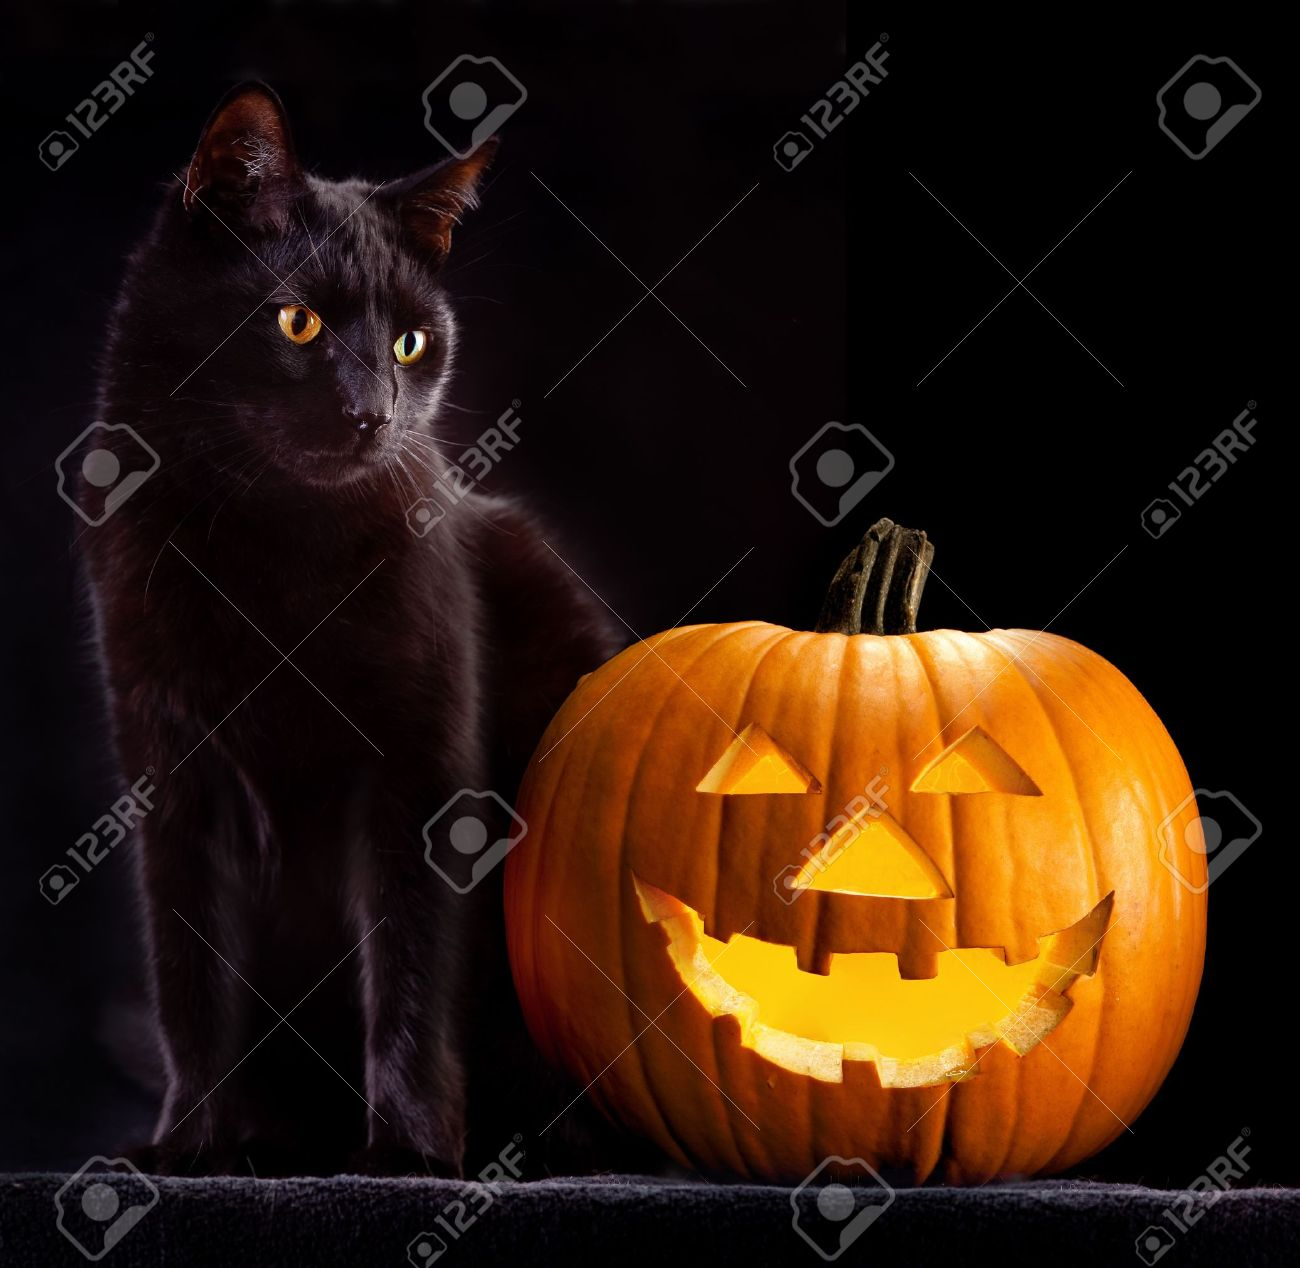 Halloween Cat Stock Photos. Royalty Free Business Images